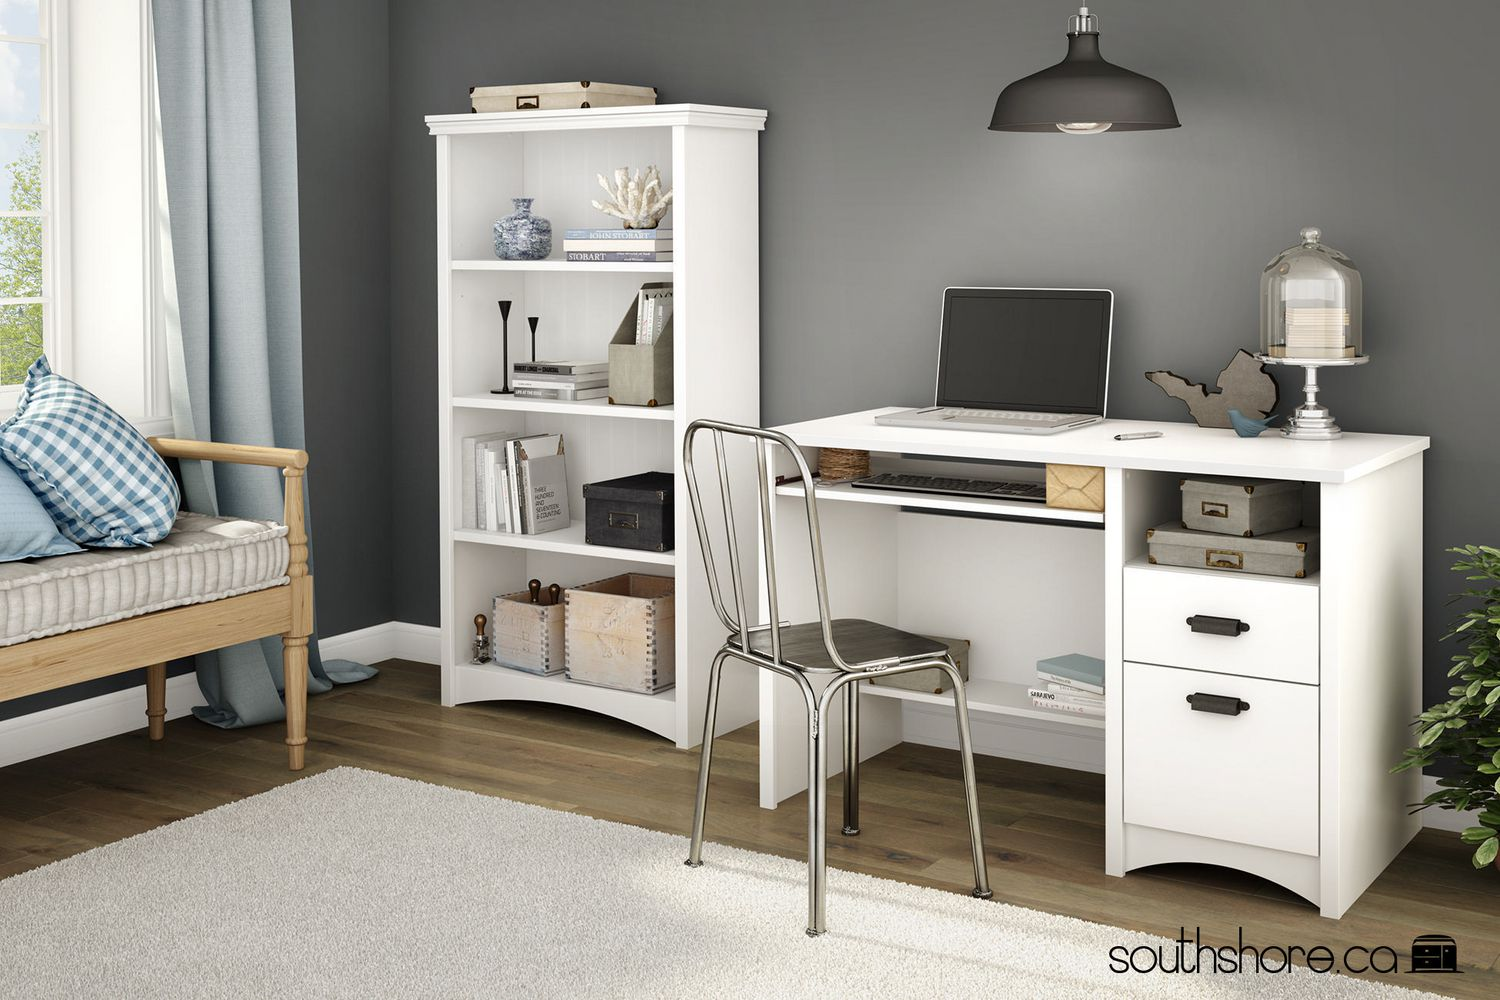 storage shore work with annexe furniture dp kitchen combo and table ca unit south computer desk shelves amazon home